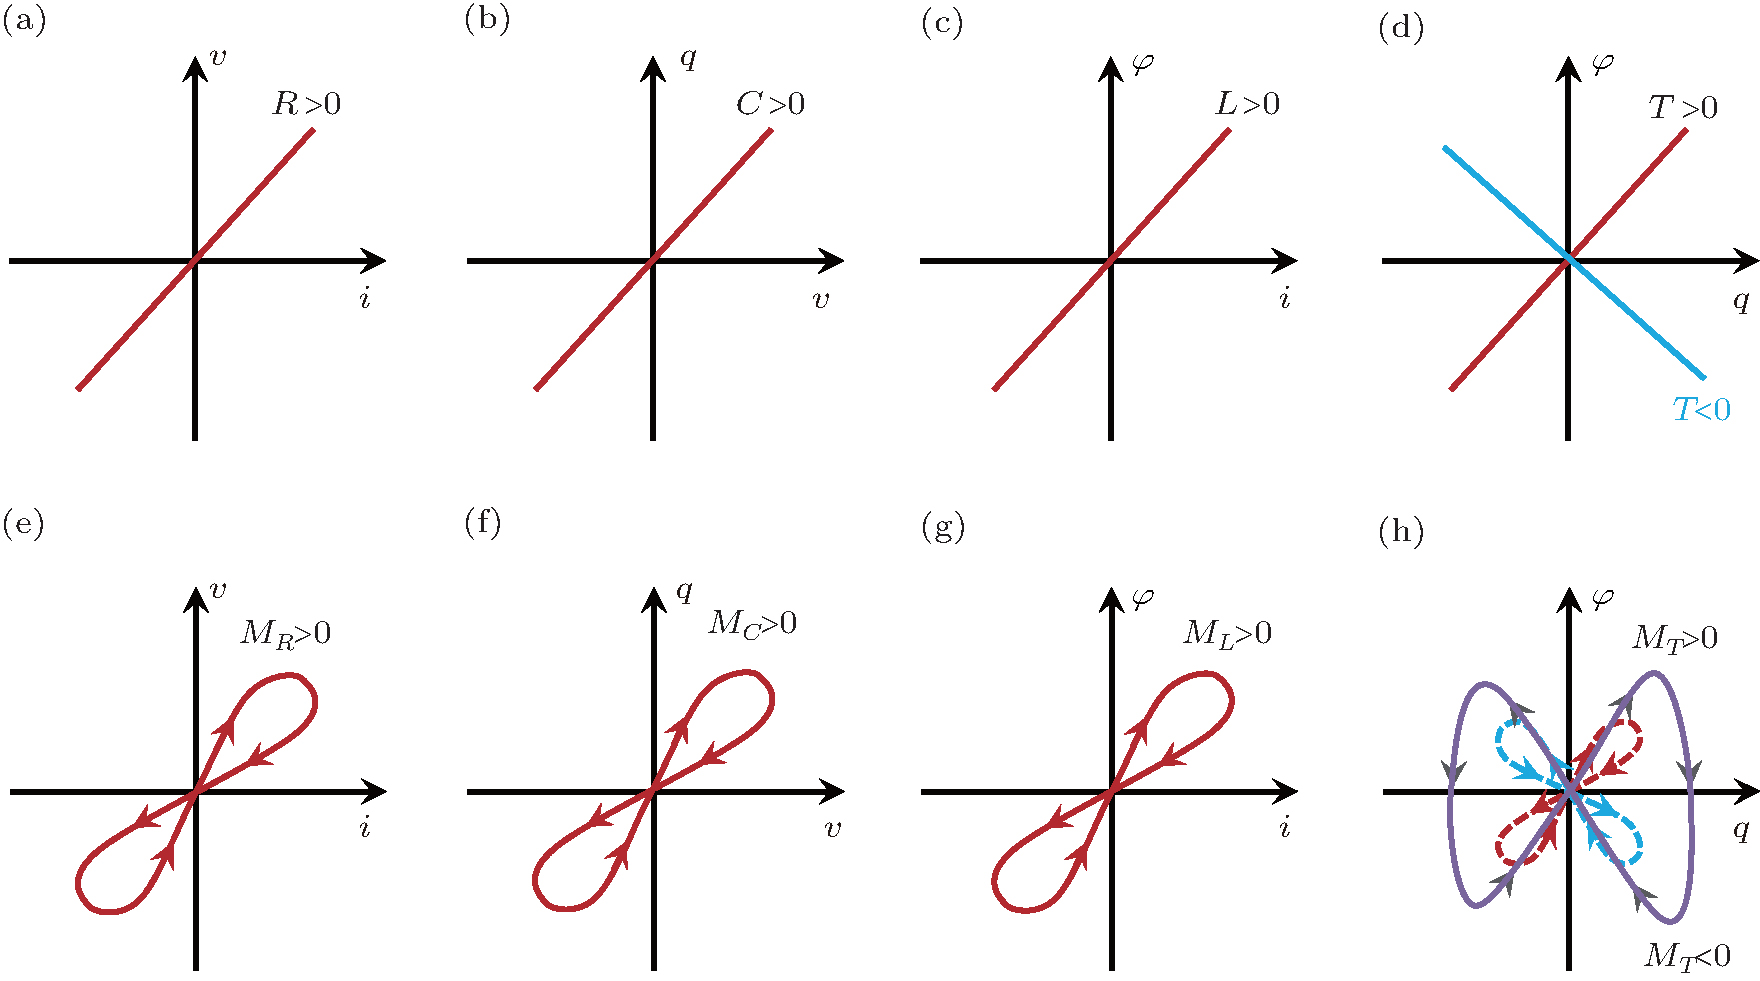 Toward the complete relational graph of fundamental circuit elements ...